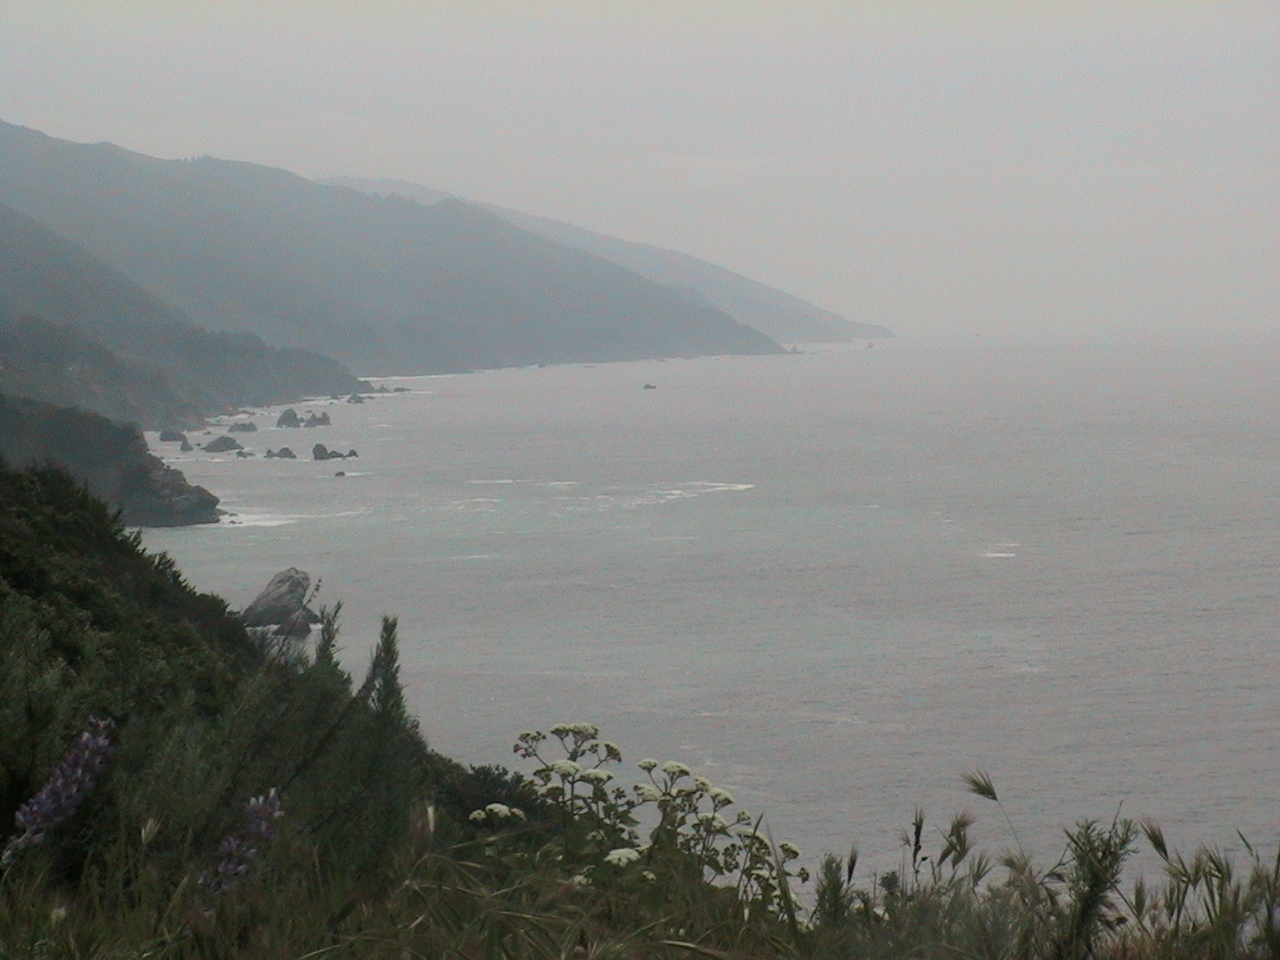 Big Sur, about 20 miles south of Monterrey on US1